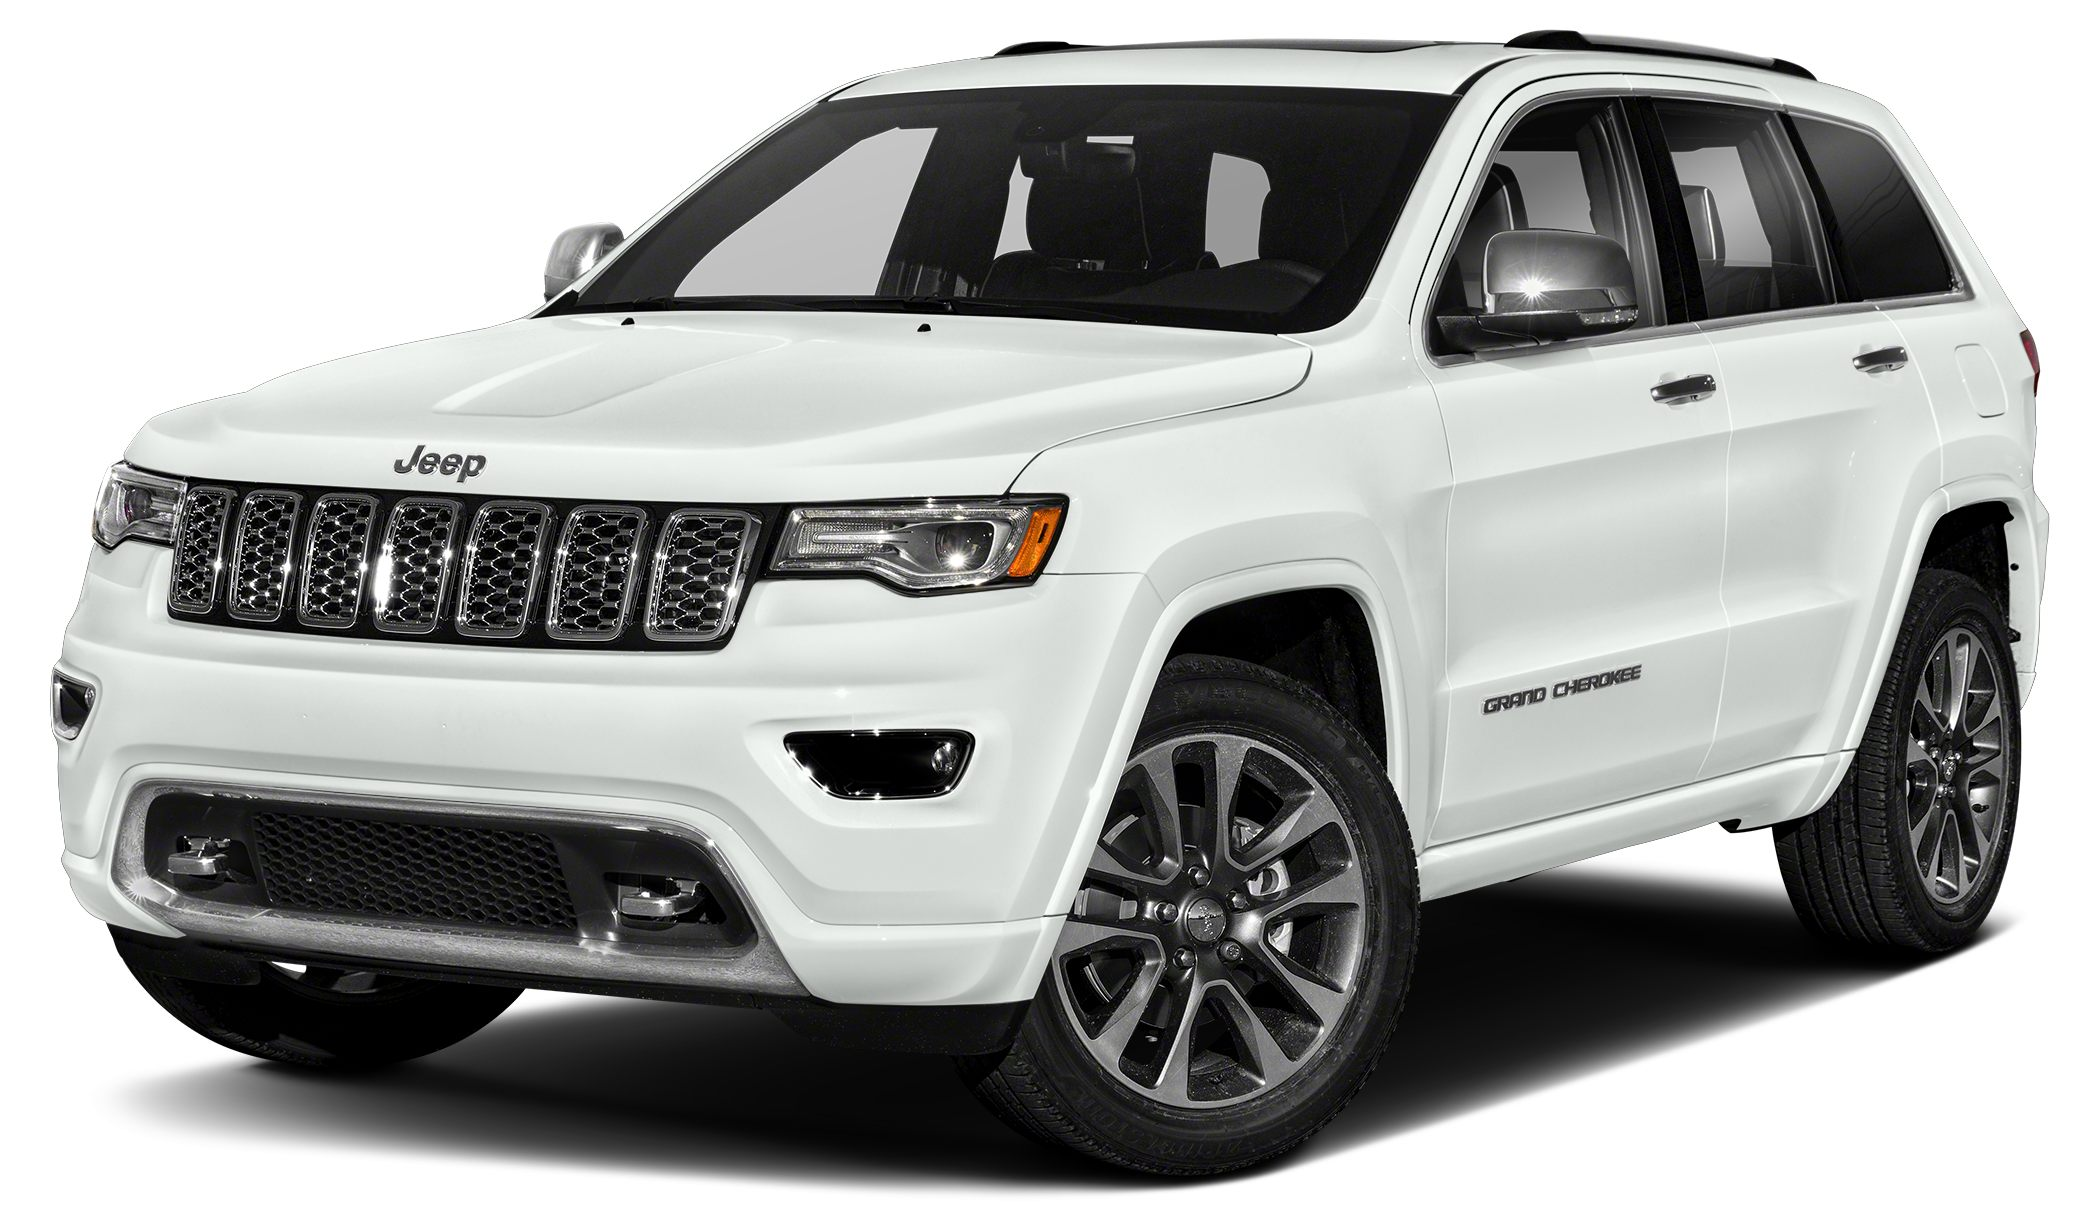 2017 Jeep Grand Cherokee Overland Great MPG 26 MPG Hwy In these economic times a super vehicle